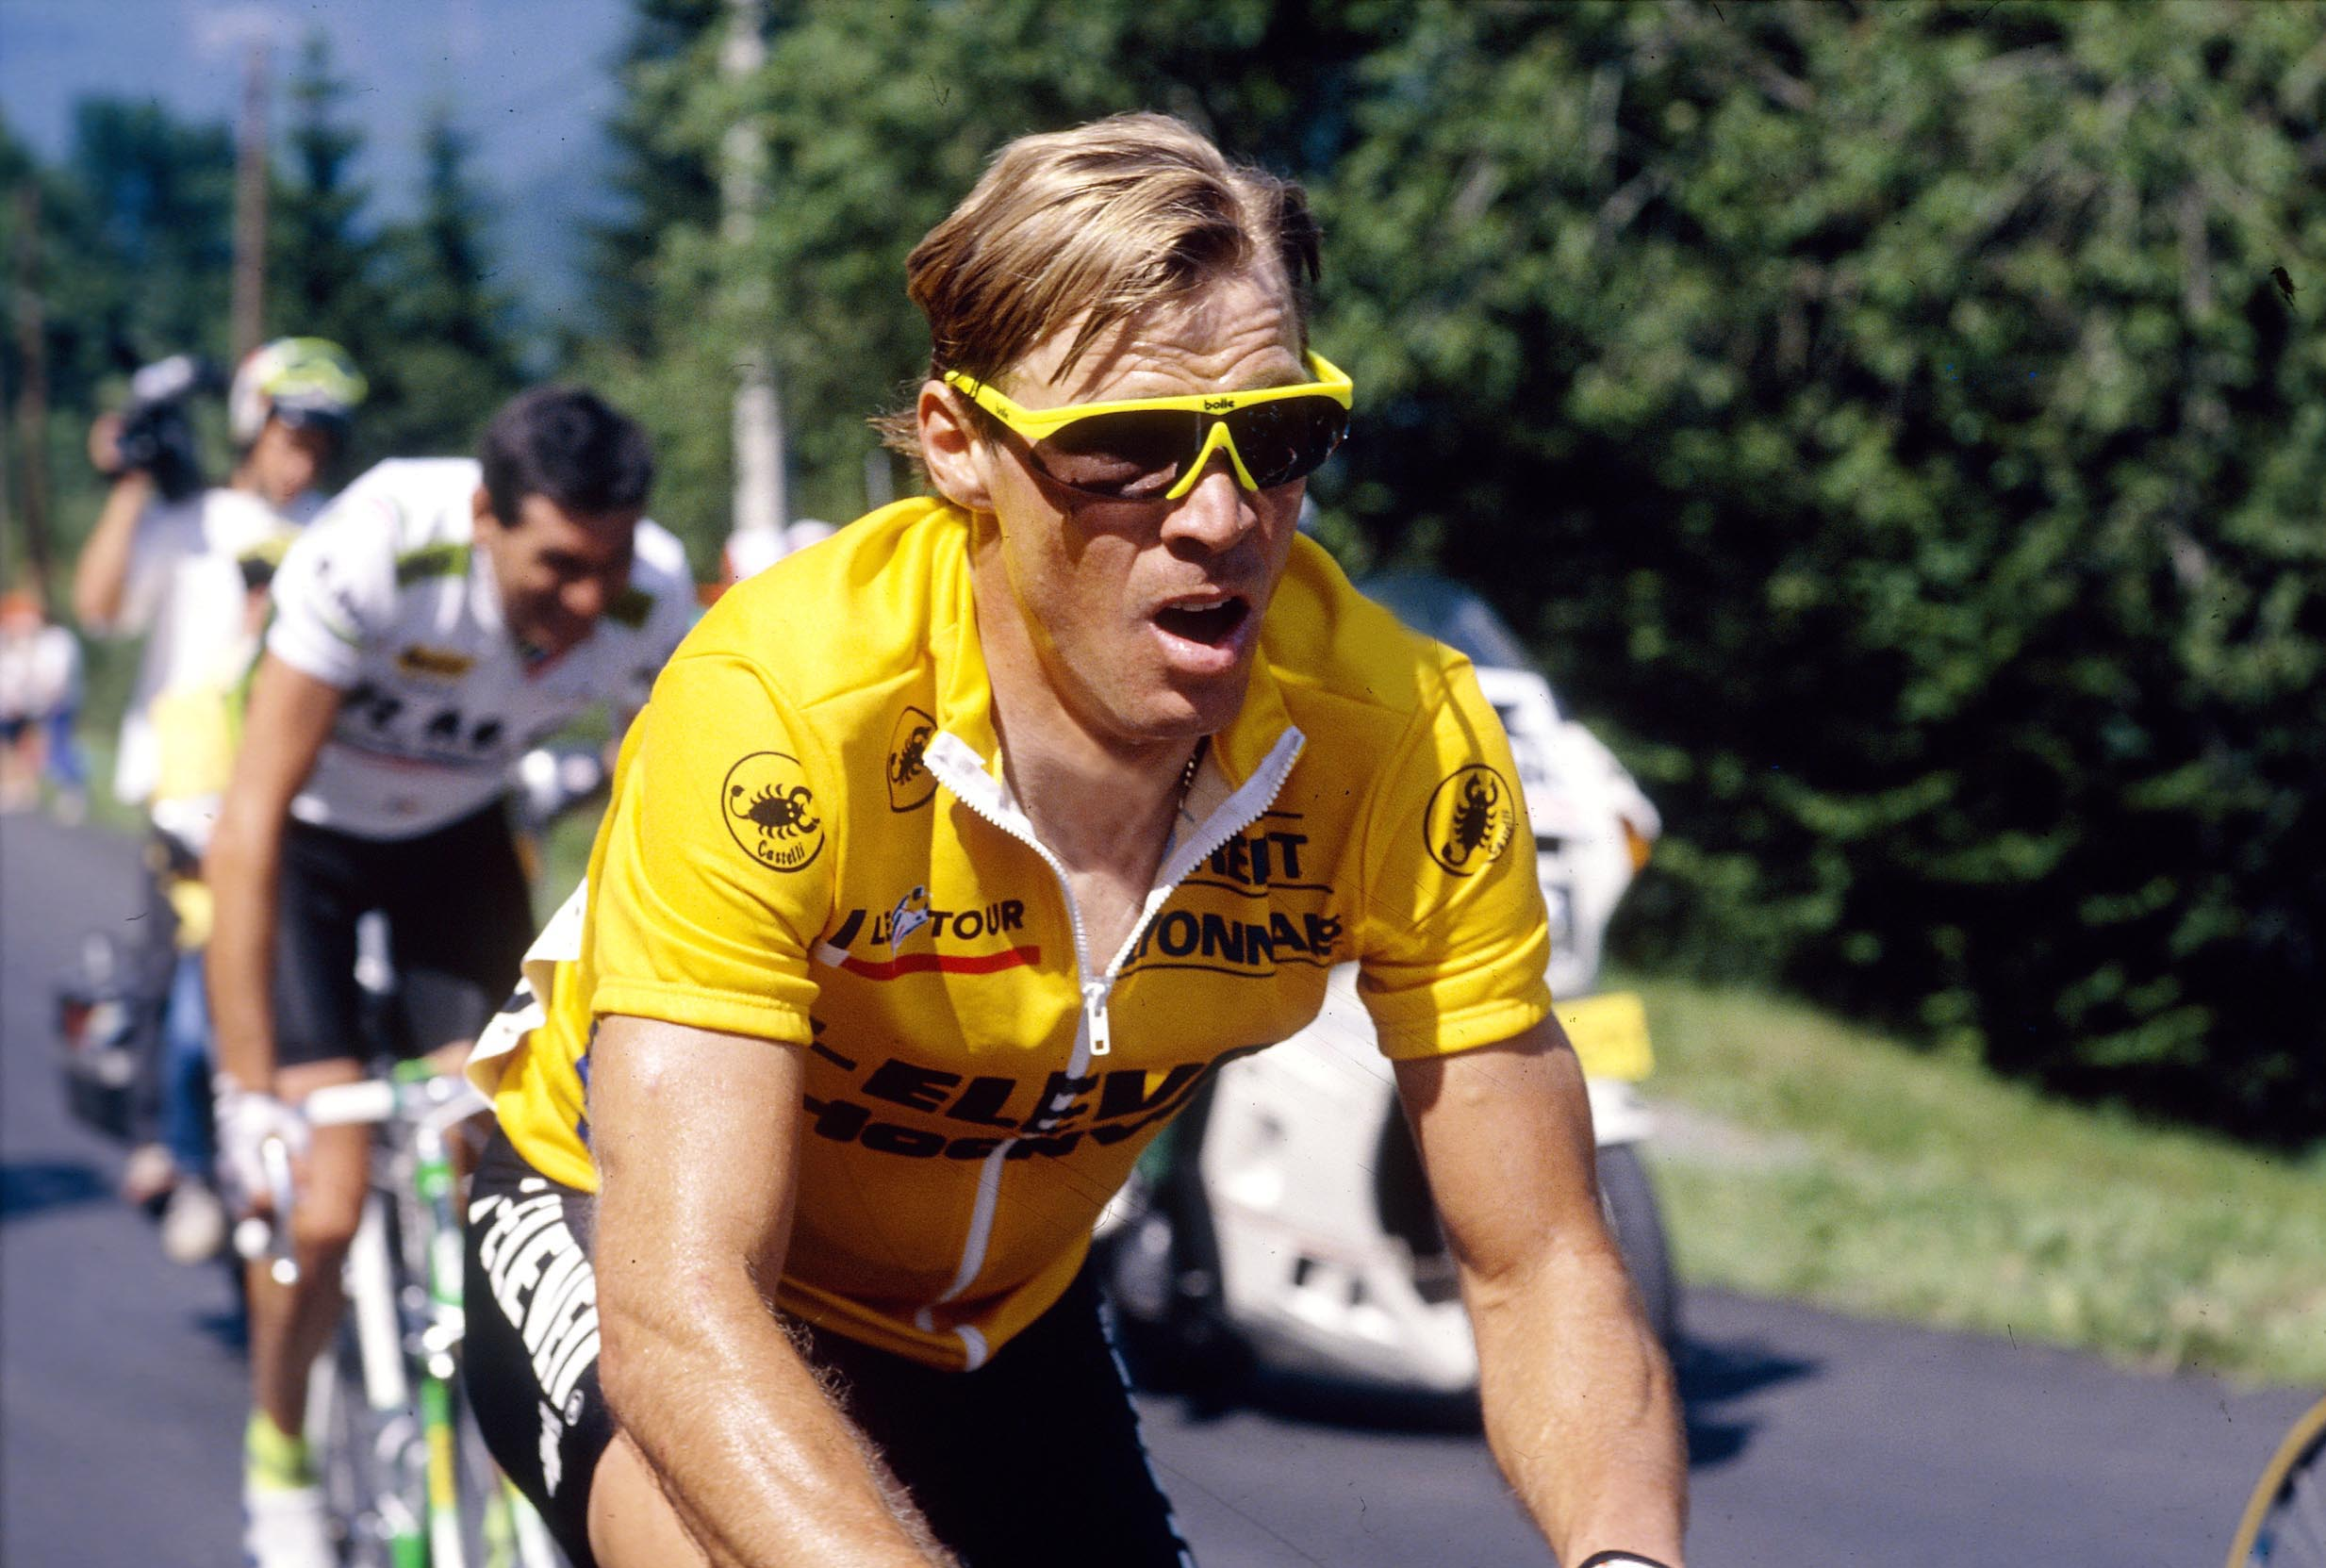 Canadian Steve Bauer wears the Yellow Jersey at the Tour de France in 1990